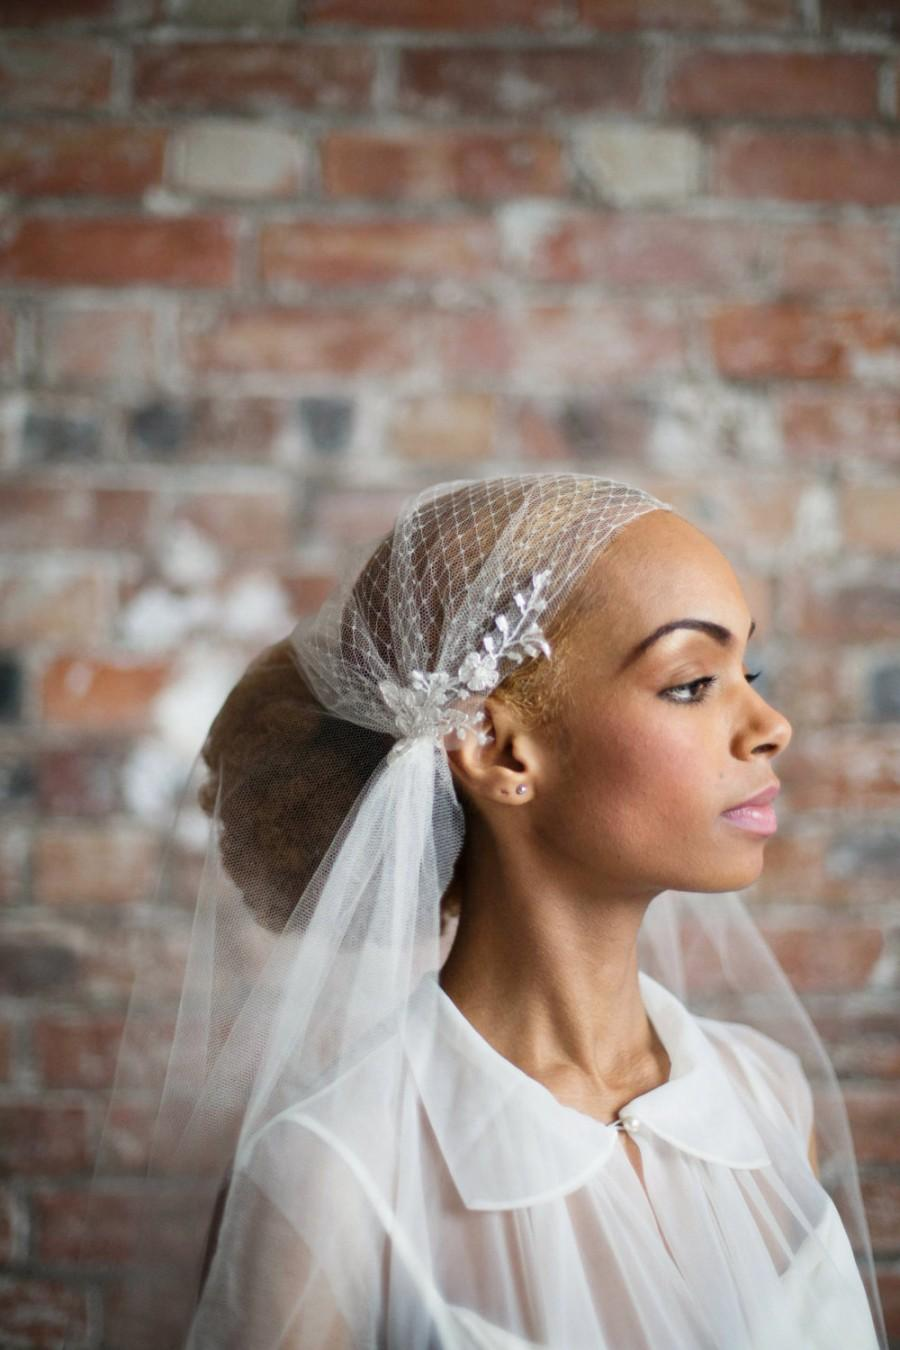 Свадьба - Silk tulle juliet cap veil - 1930s vintage style veil with french net and beaded floral lace - chapel length, waltz length, cathedral length